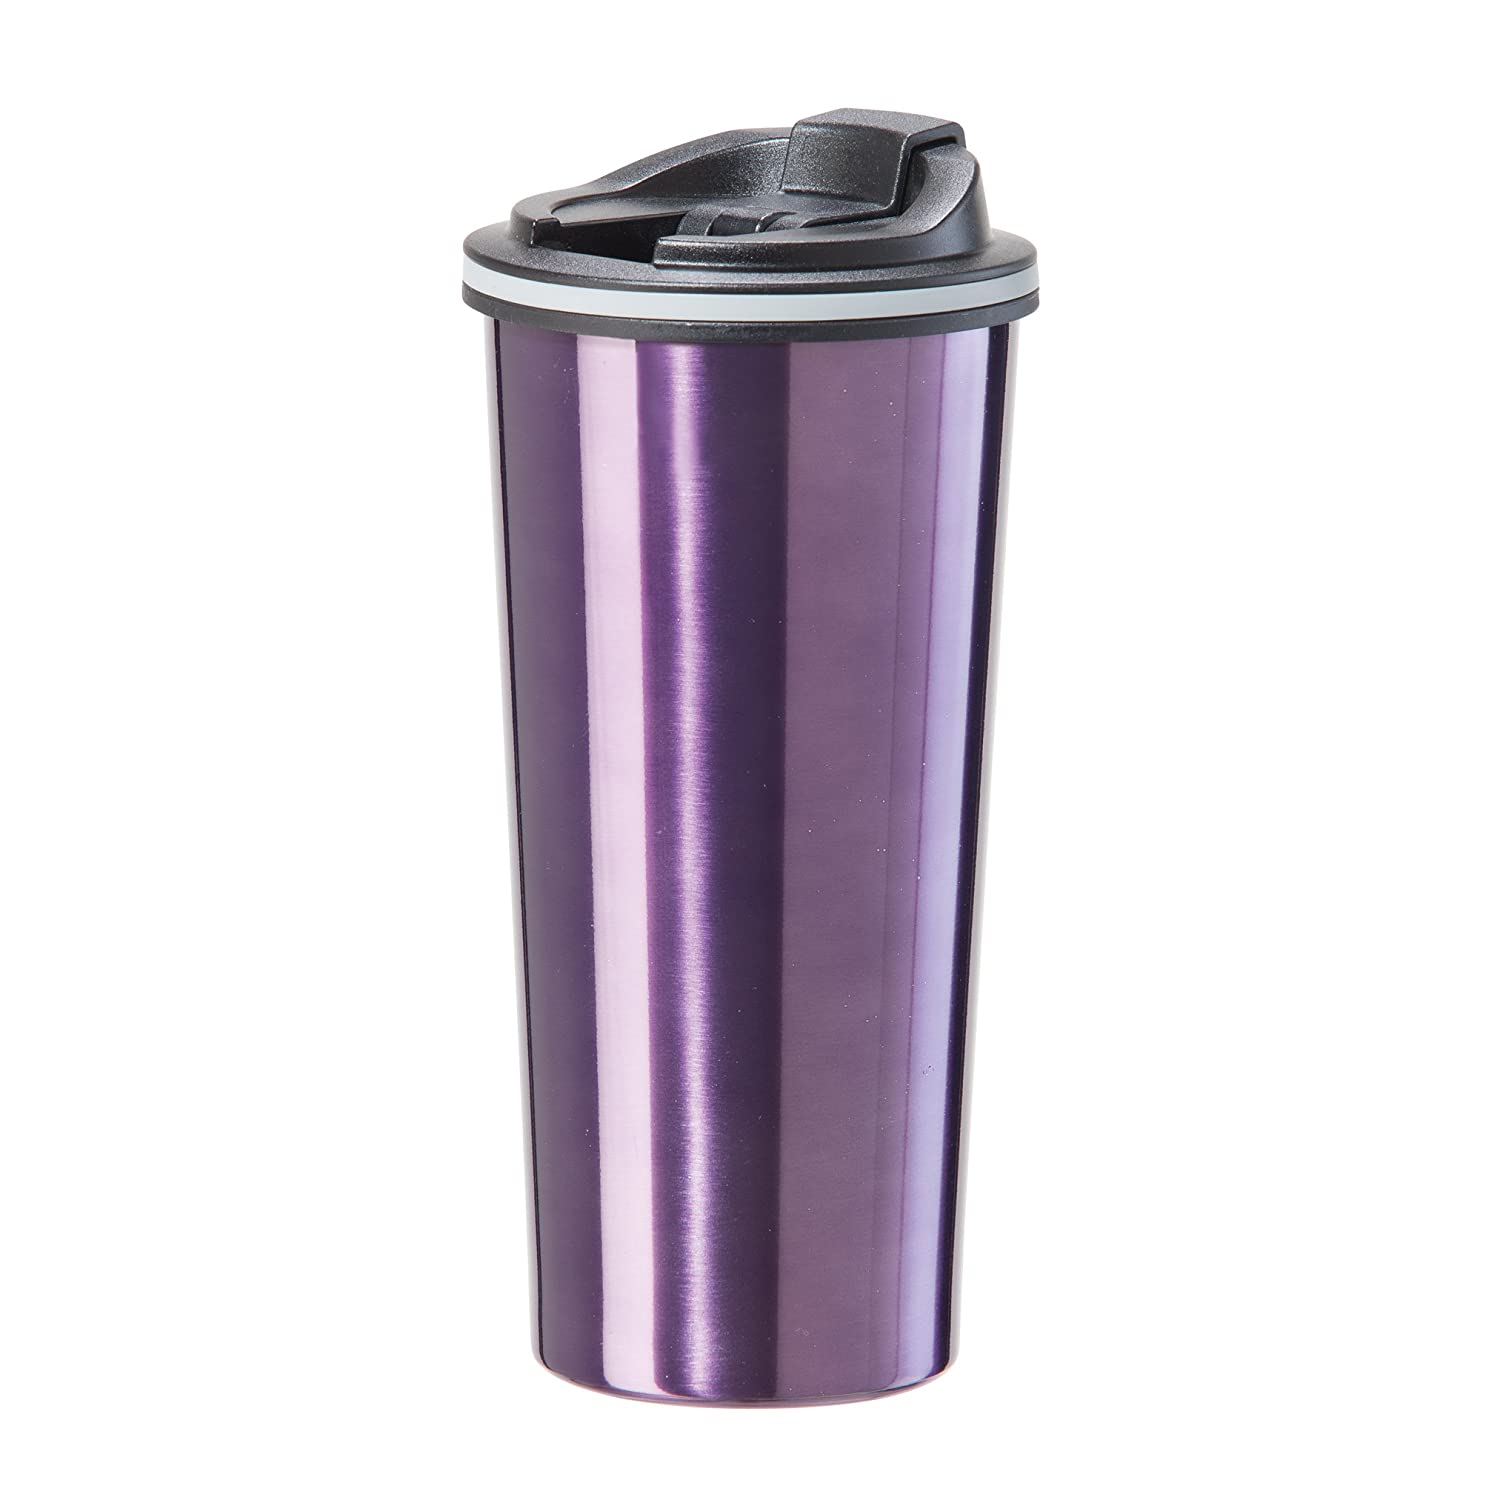 feb4ed60fb3 Amazon.com: Oggi 8063.8 Double Wall Stainless Steel Travel Mug with Stainless  Steel Liner and Flip Open Top, 0.5 L/16 oz, Purple: Kitchen & Dining